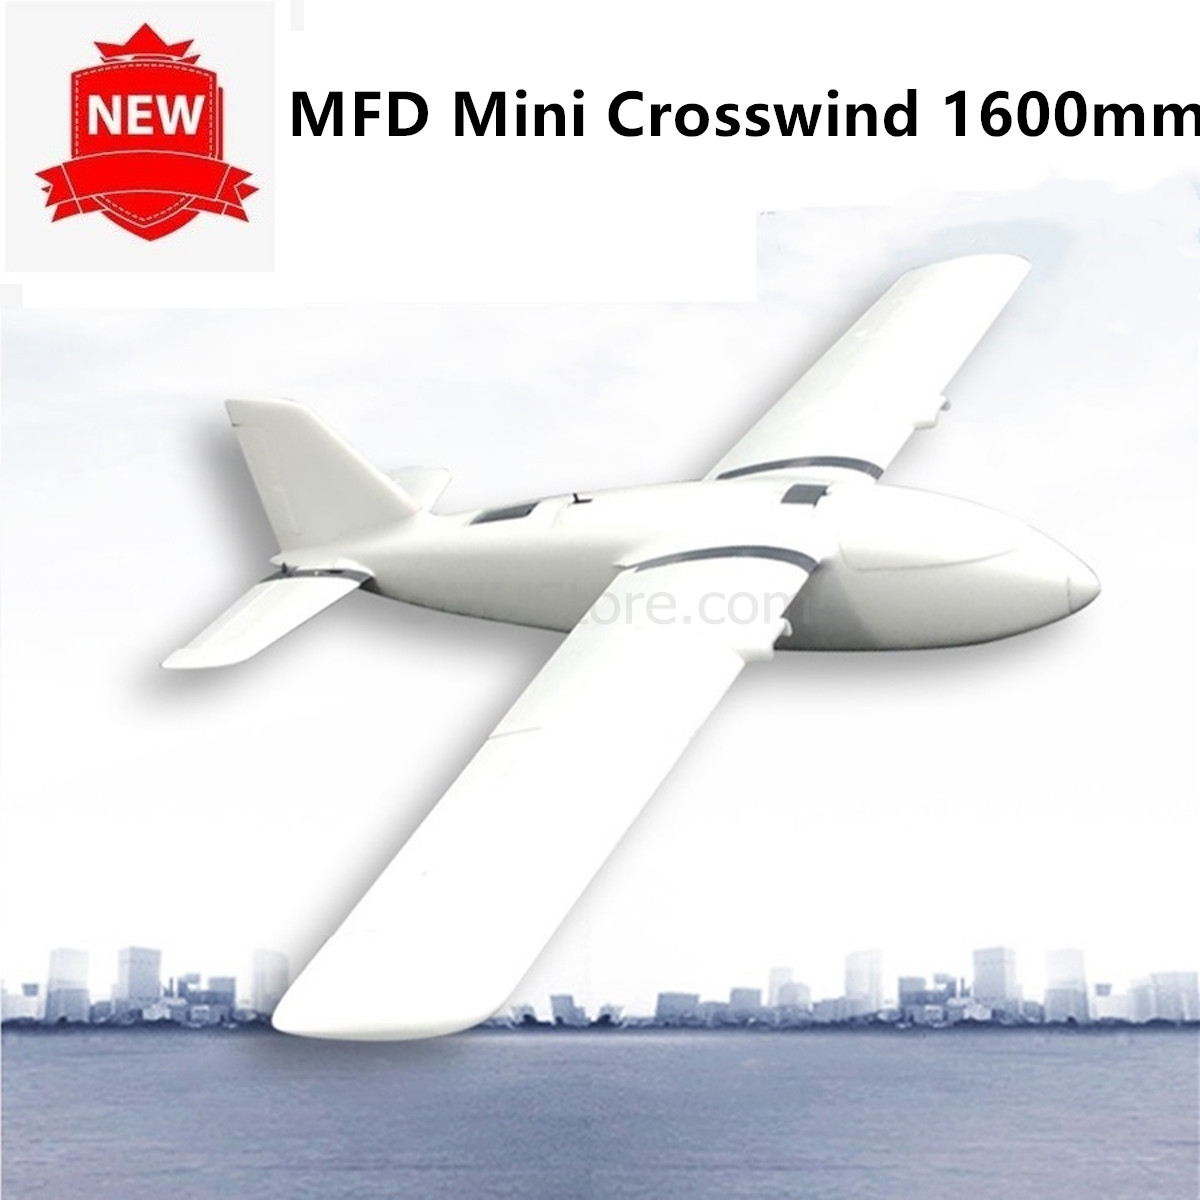 MFD Mini Crosswind 1600mm Wing FPV Plane Kit Fixed wing UAV FPV RC Airplane EPO Model Aircraft image